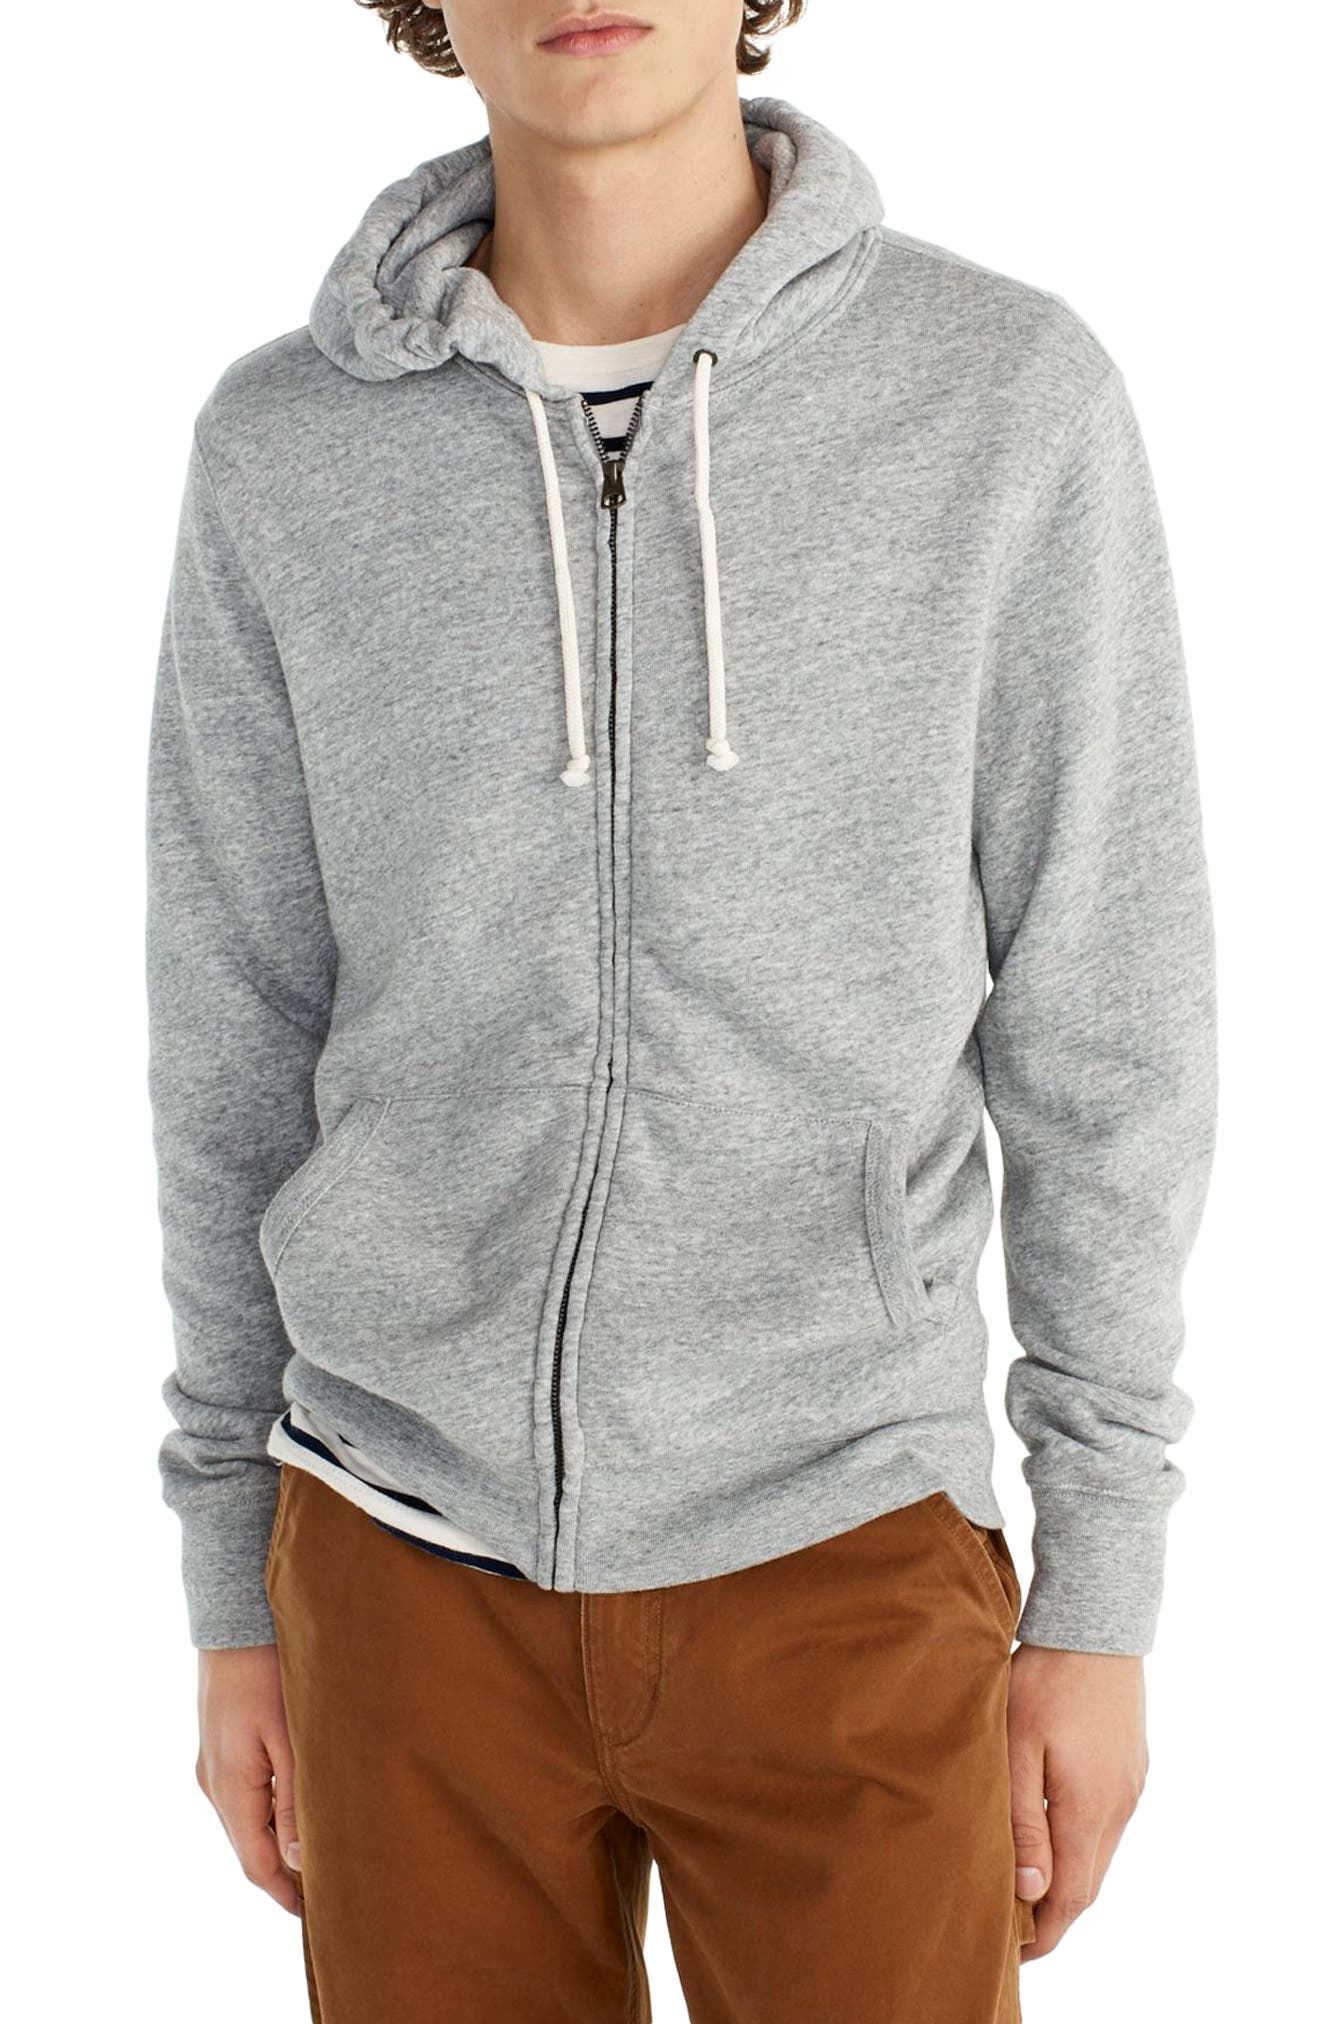 Brushed Fleece Zip Hoodie,                             Main thumbnail 1, color,                             020